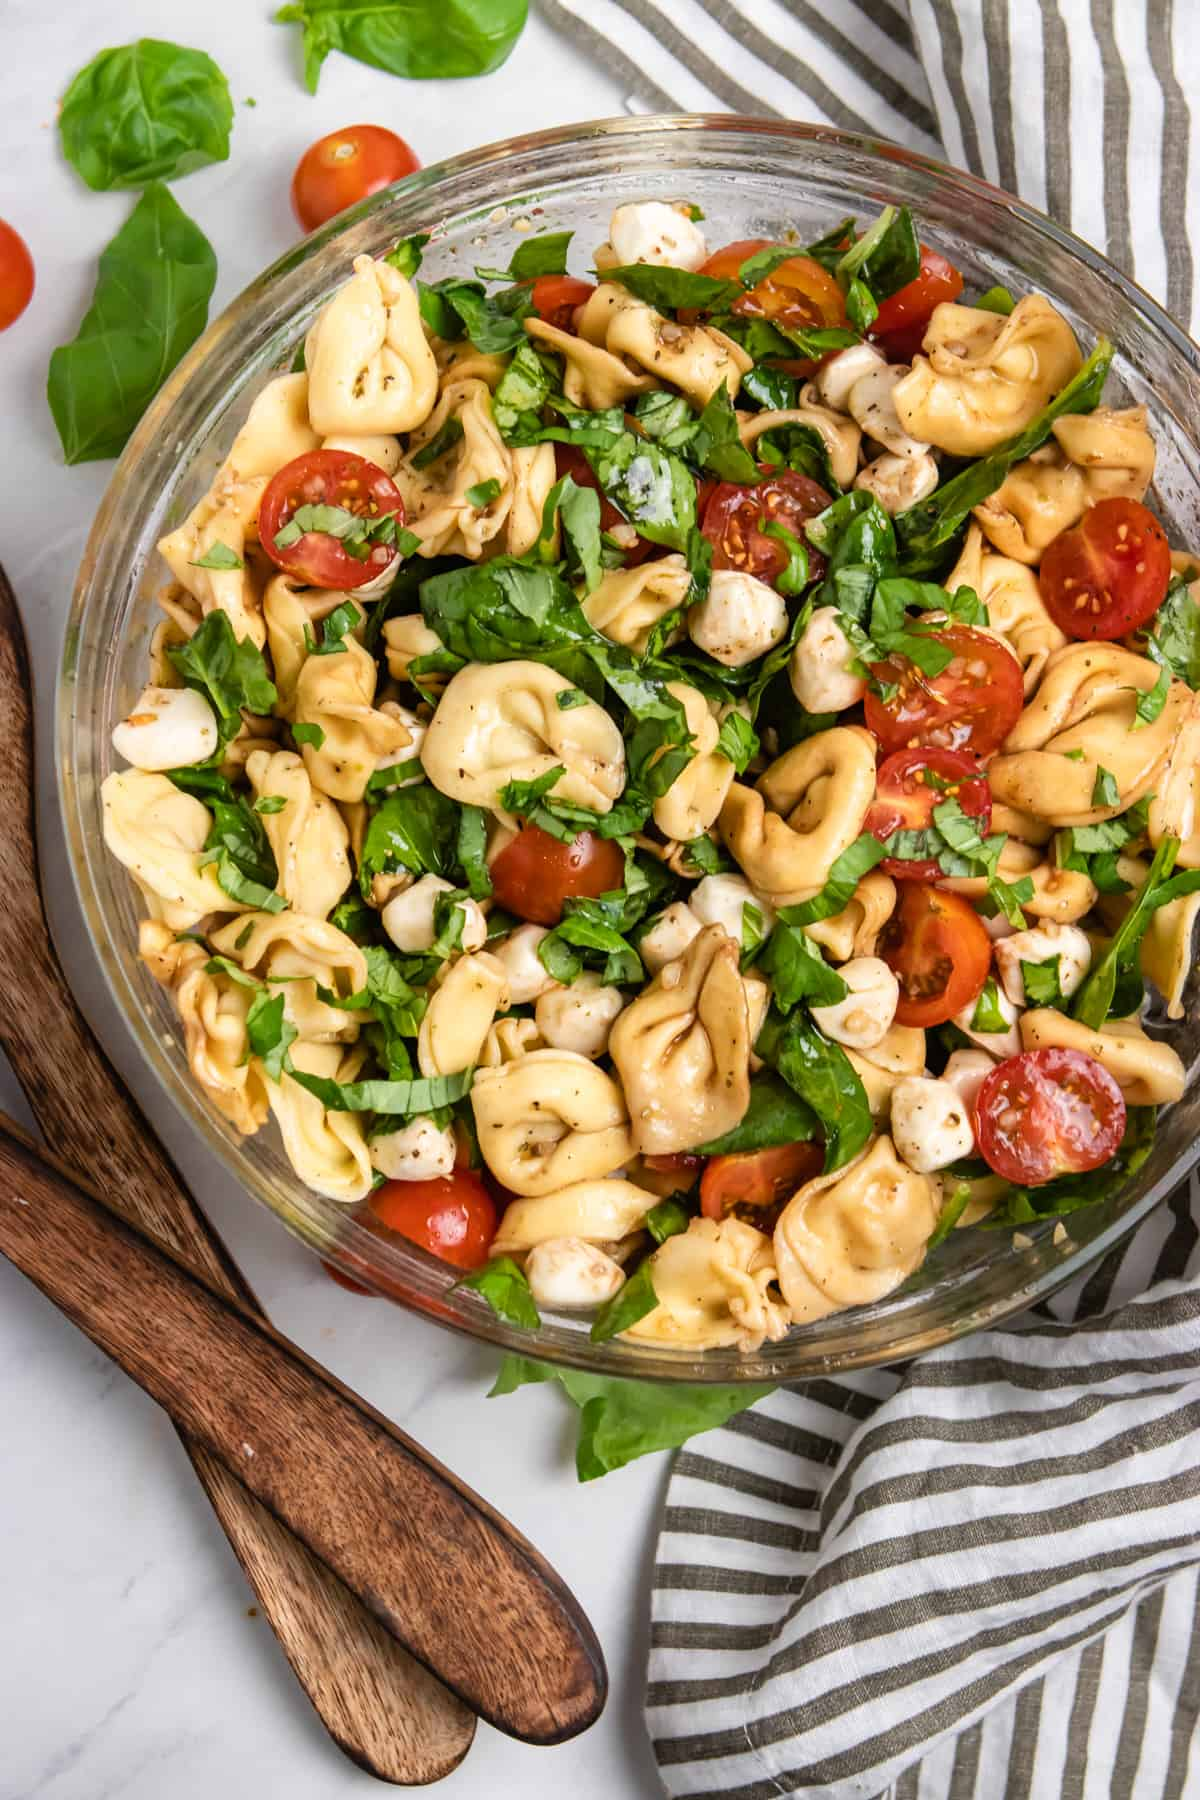 A caprese and tortellini pasta dinner salad in a large glass serving bowl with wood serving spoons on the side.